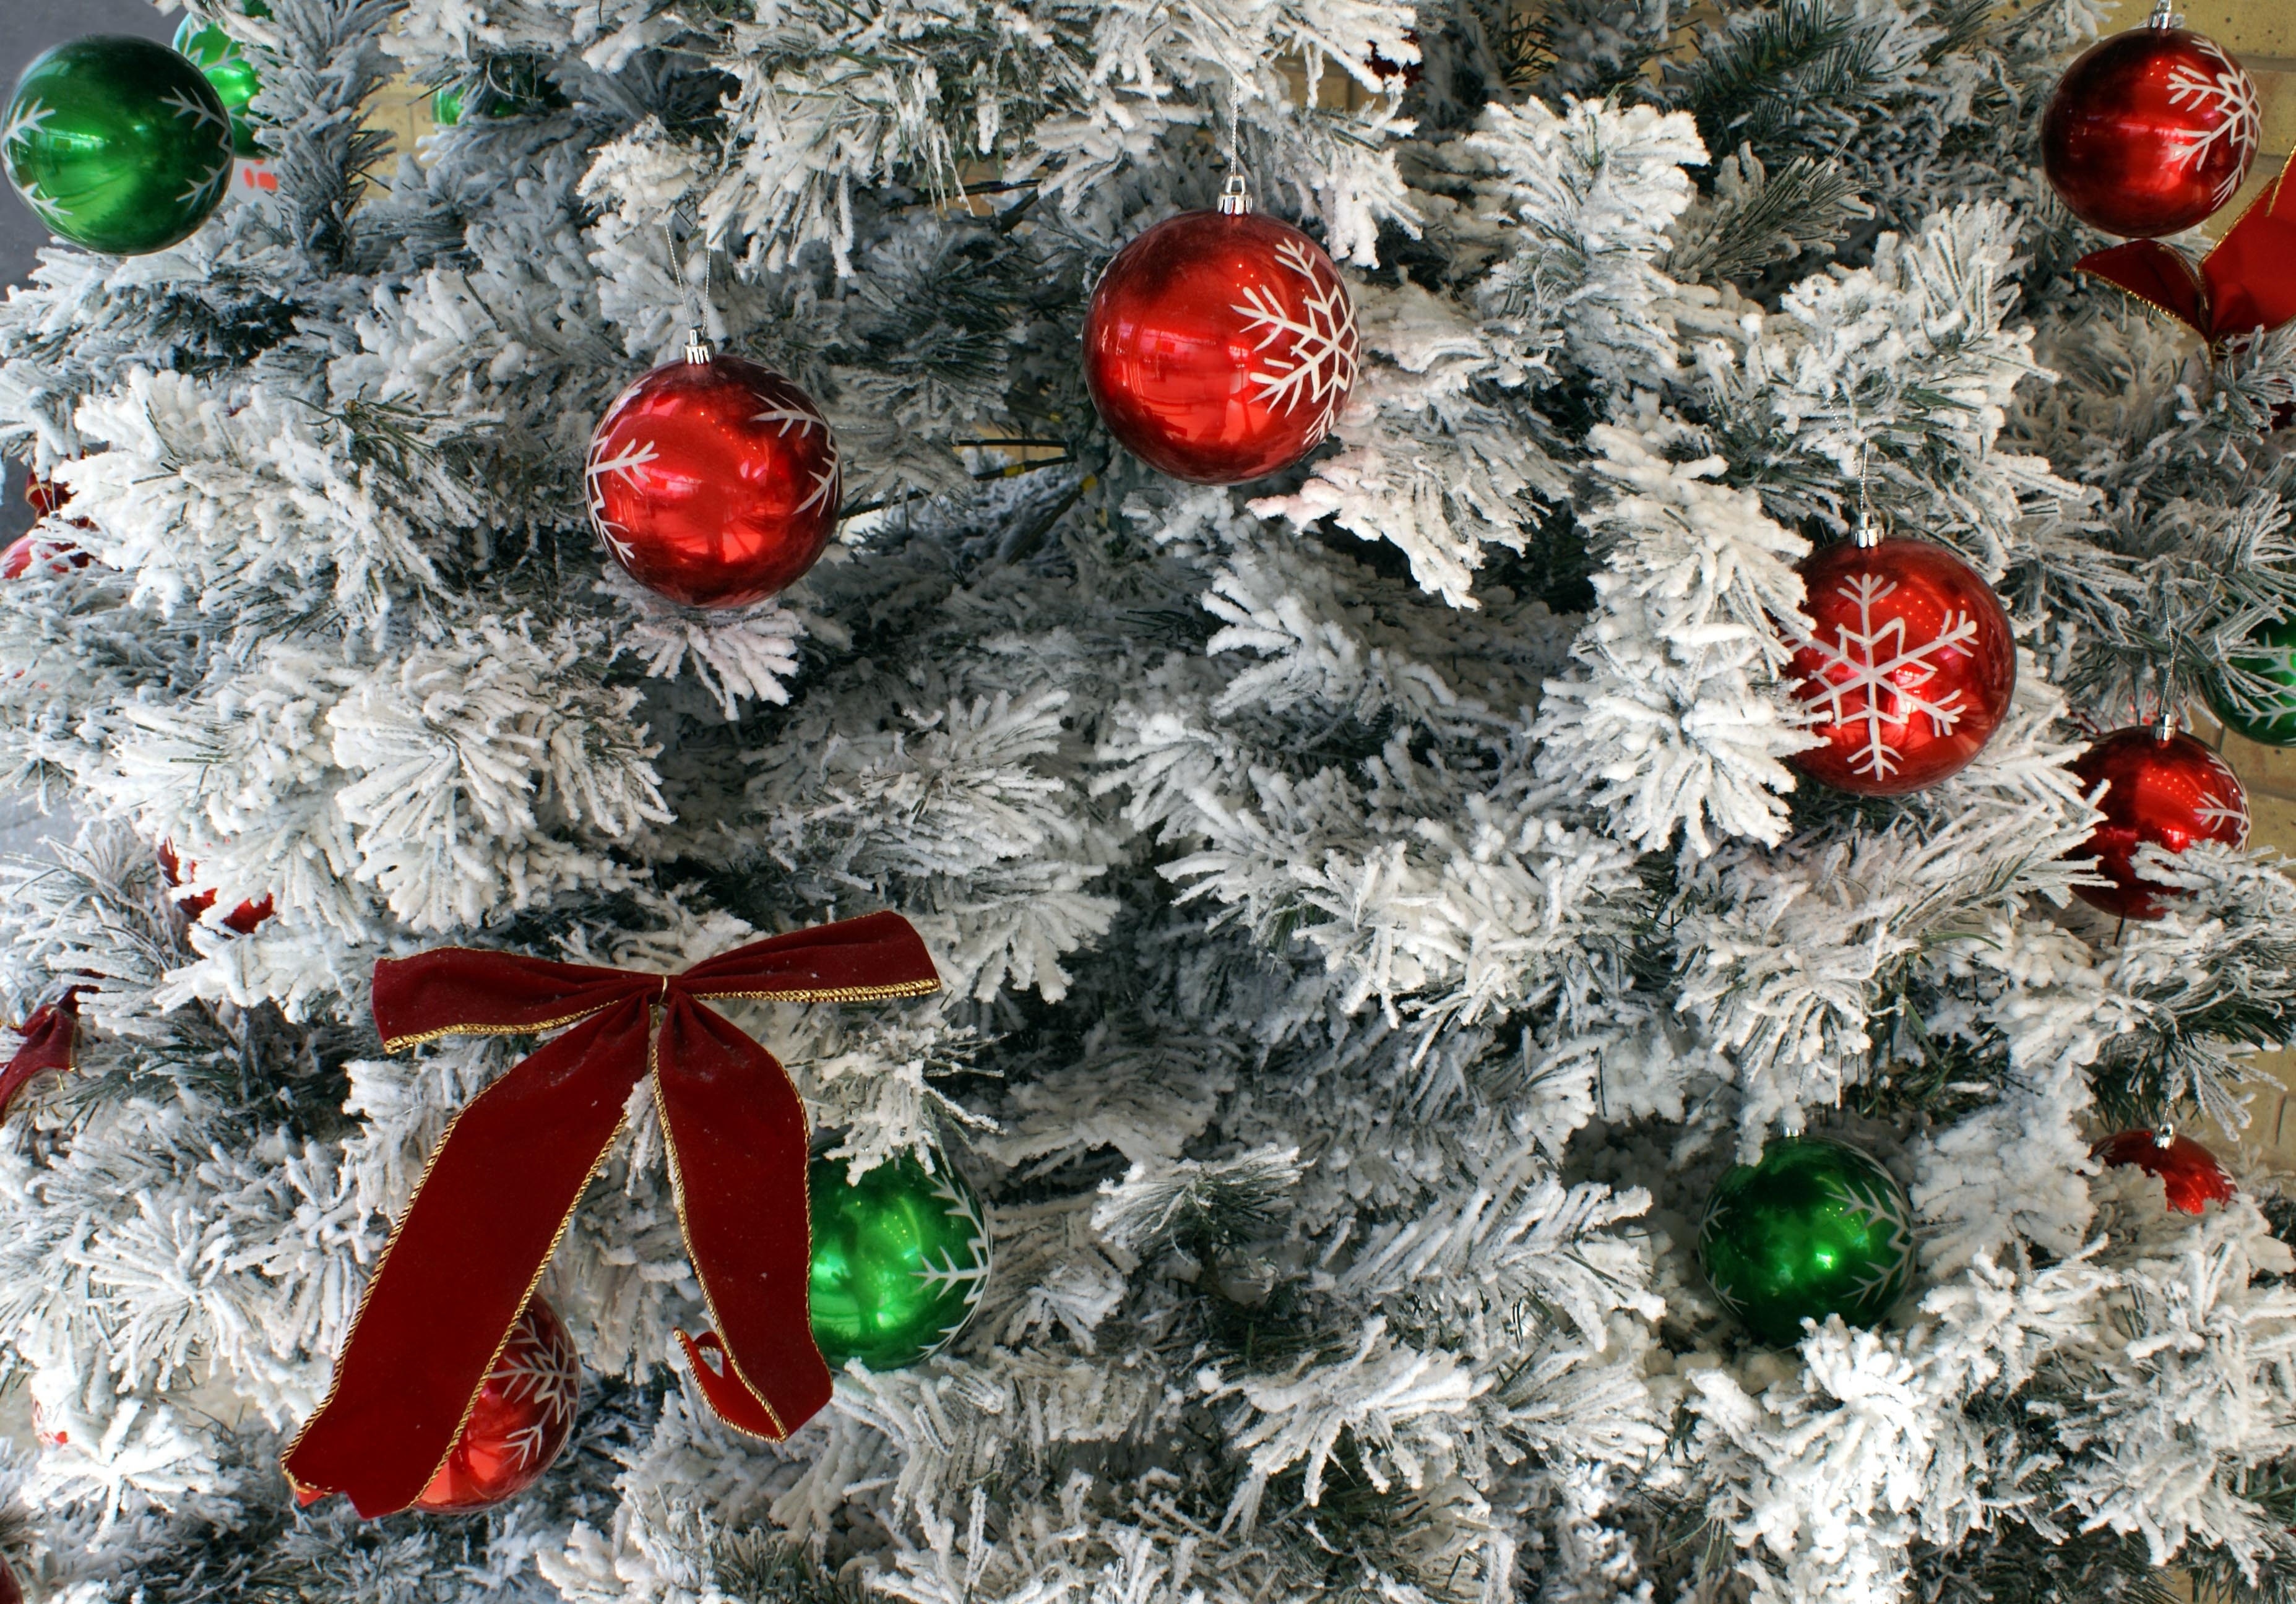 14020 download wallpaper Holidays, Background, New Year, Christmas, Xmas screensavers and pictures for free